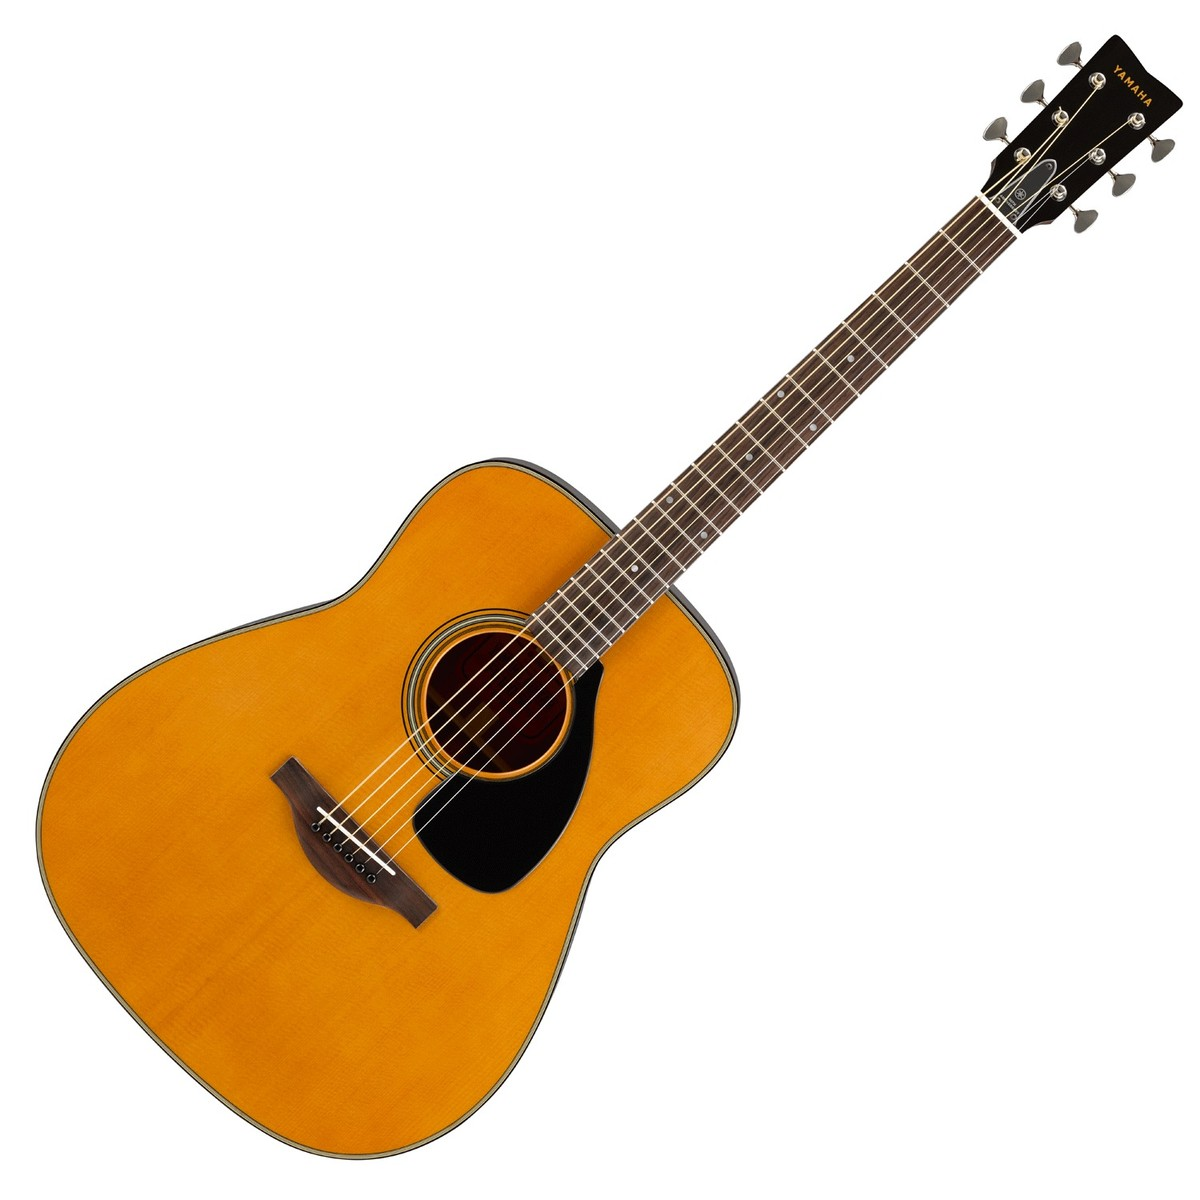 Disc yamaha fg180 50 anniversary model acoustic guitar for Yamaha classic guitar